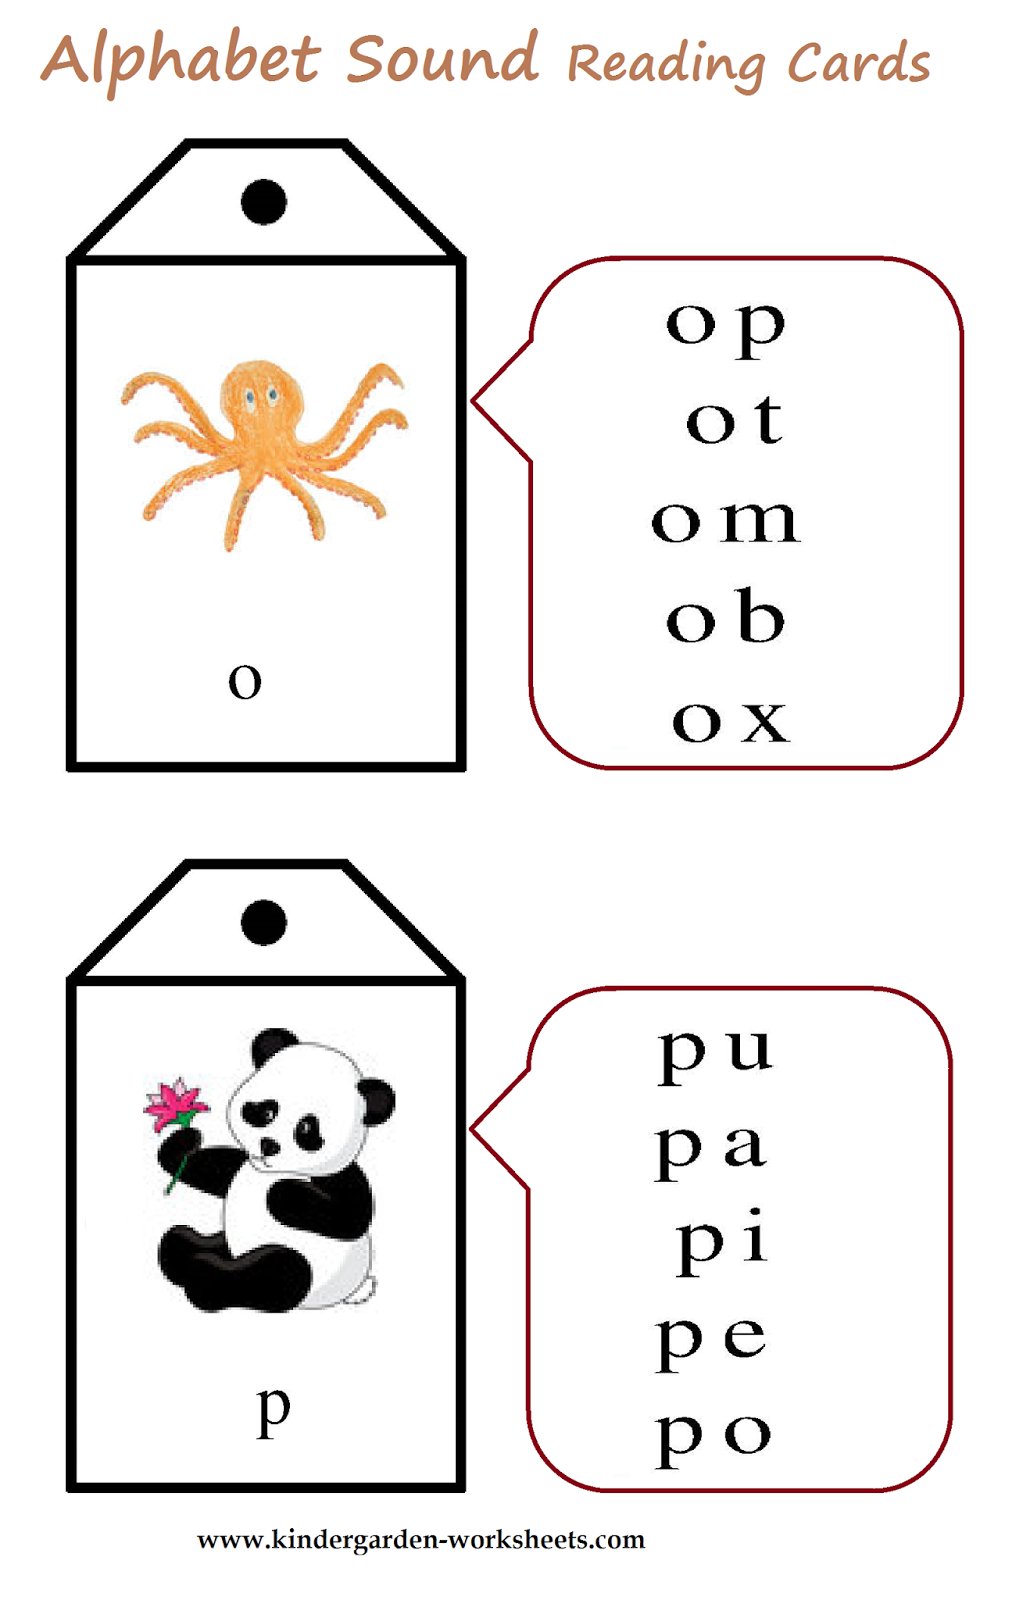 Kindergarten Worksheets Alphabet Sound Read Cards